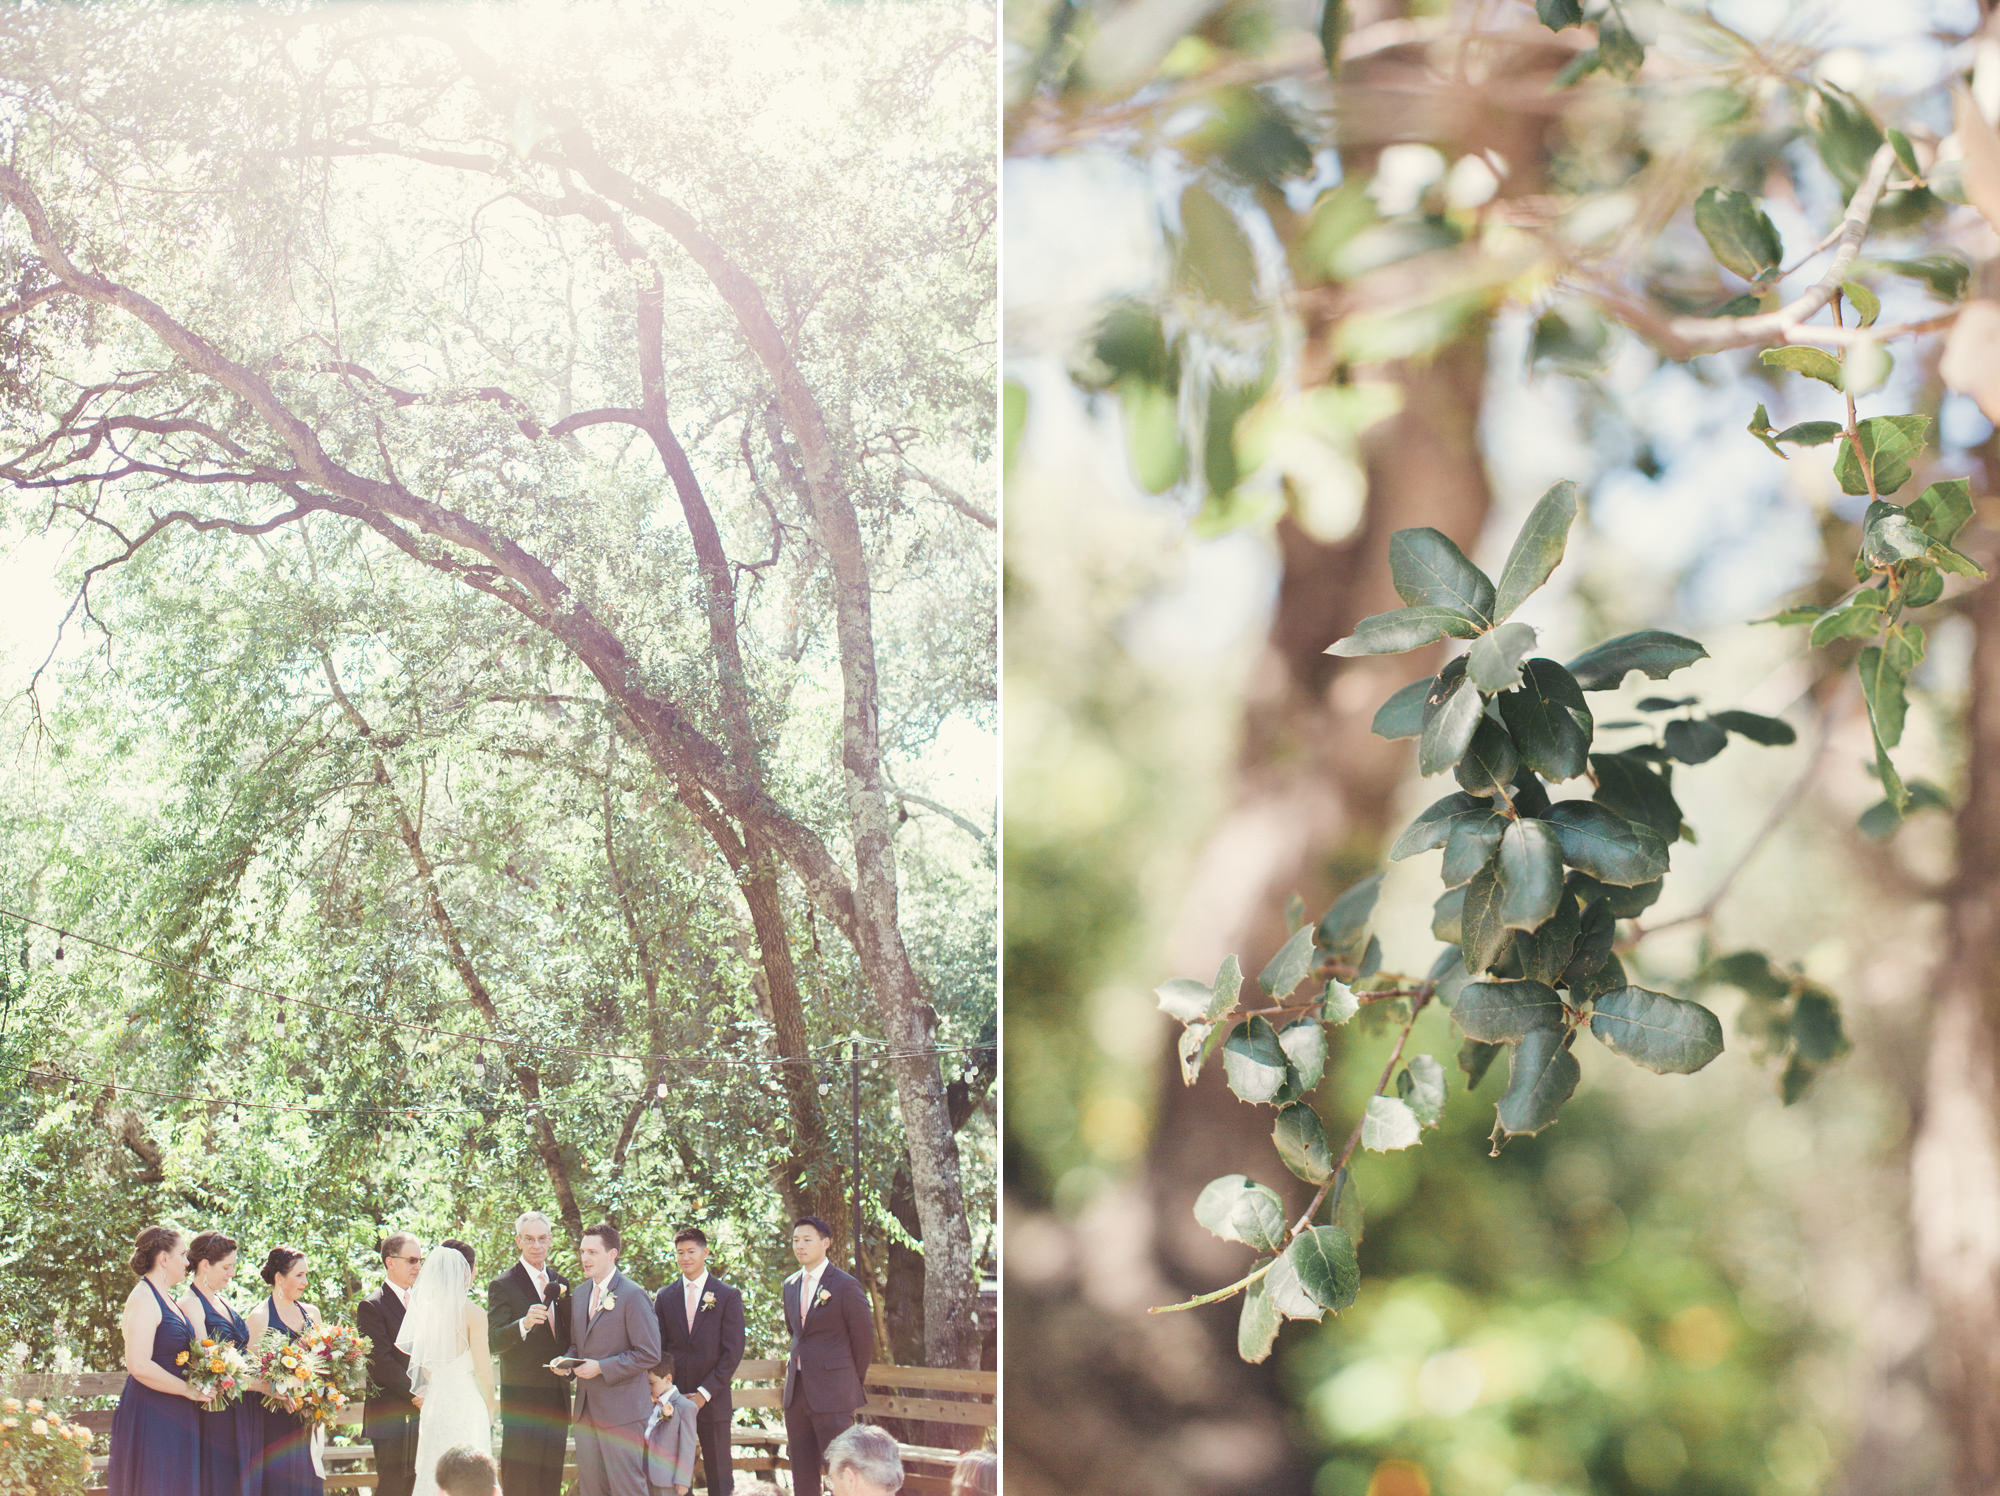 Backyard Wedding in California©Anne-Claire Brun 0014